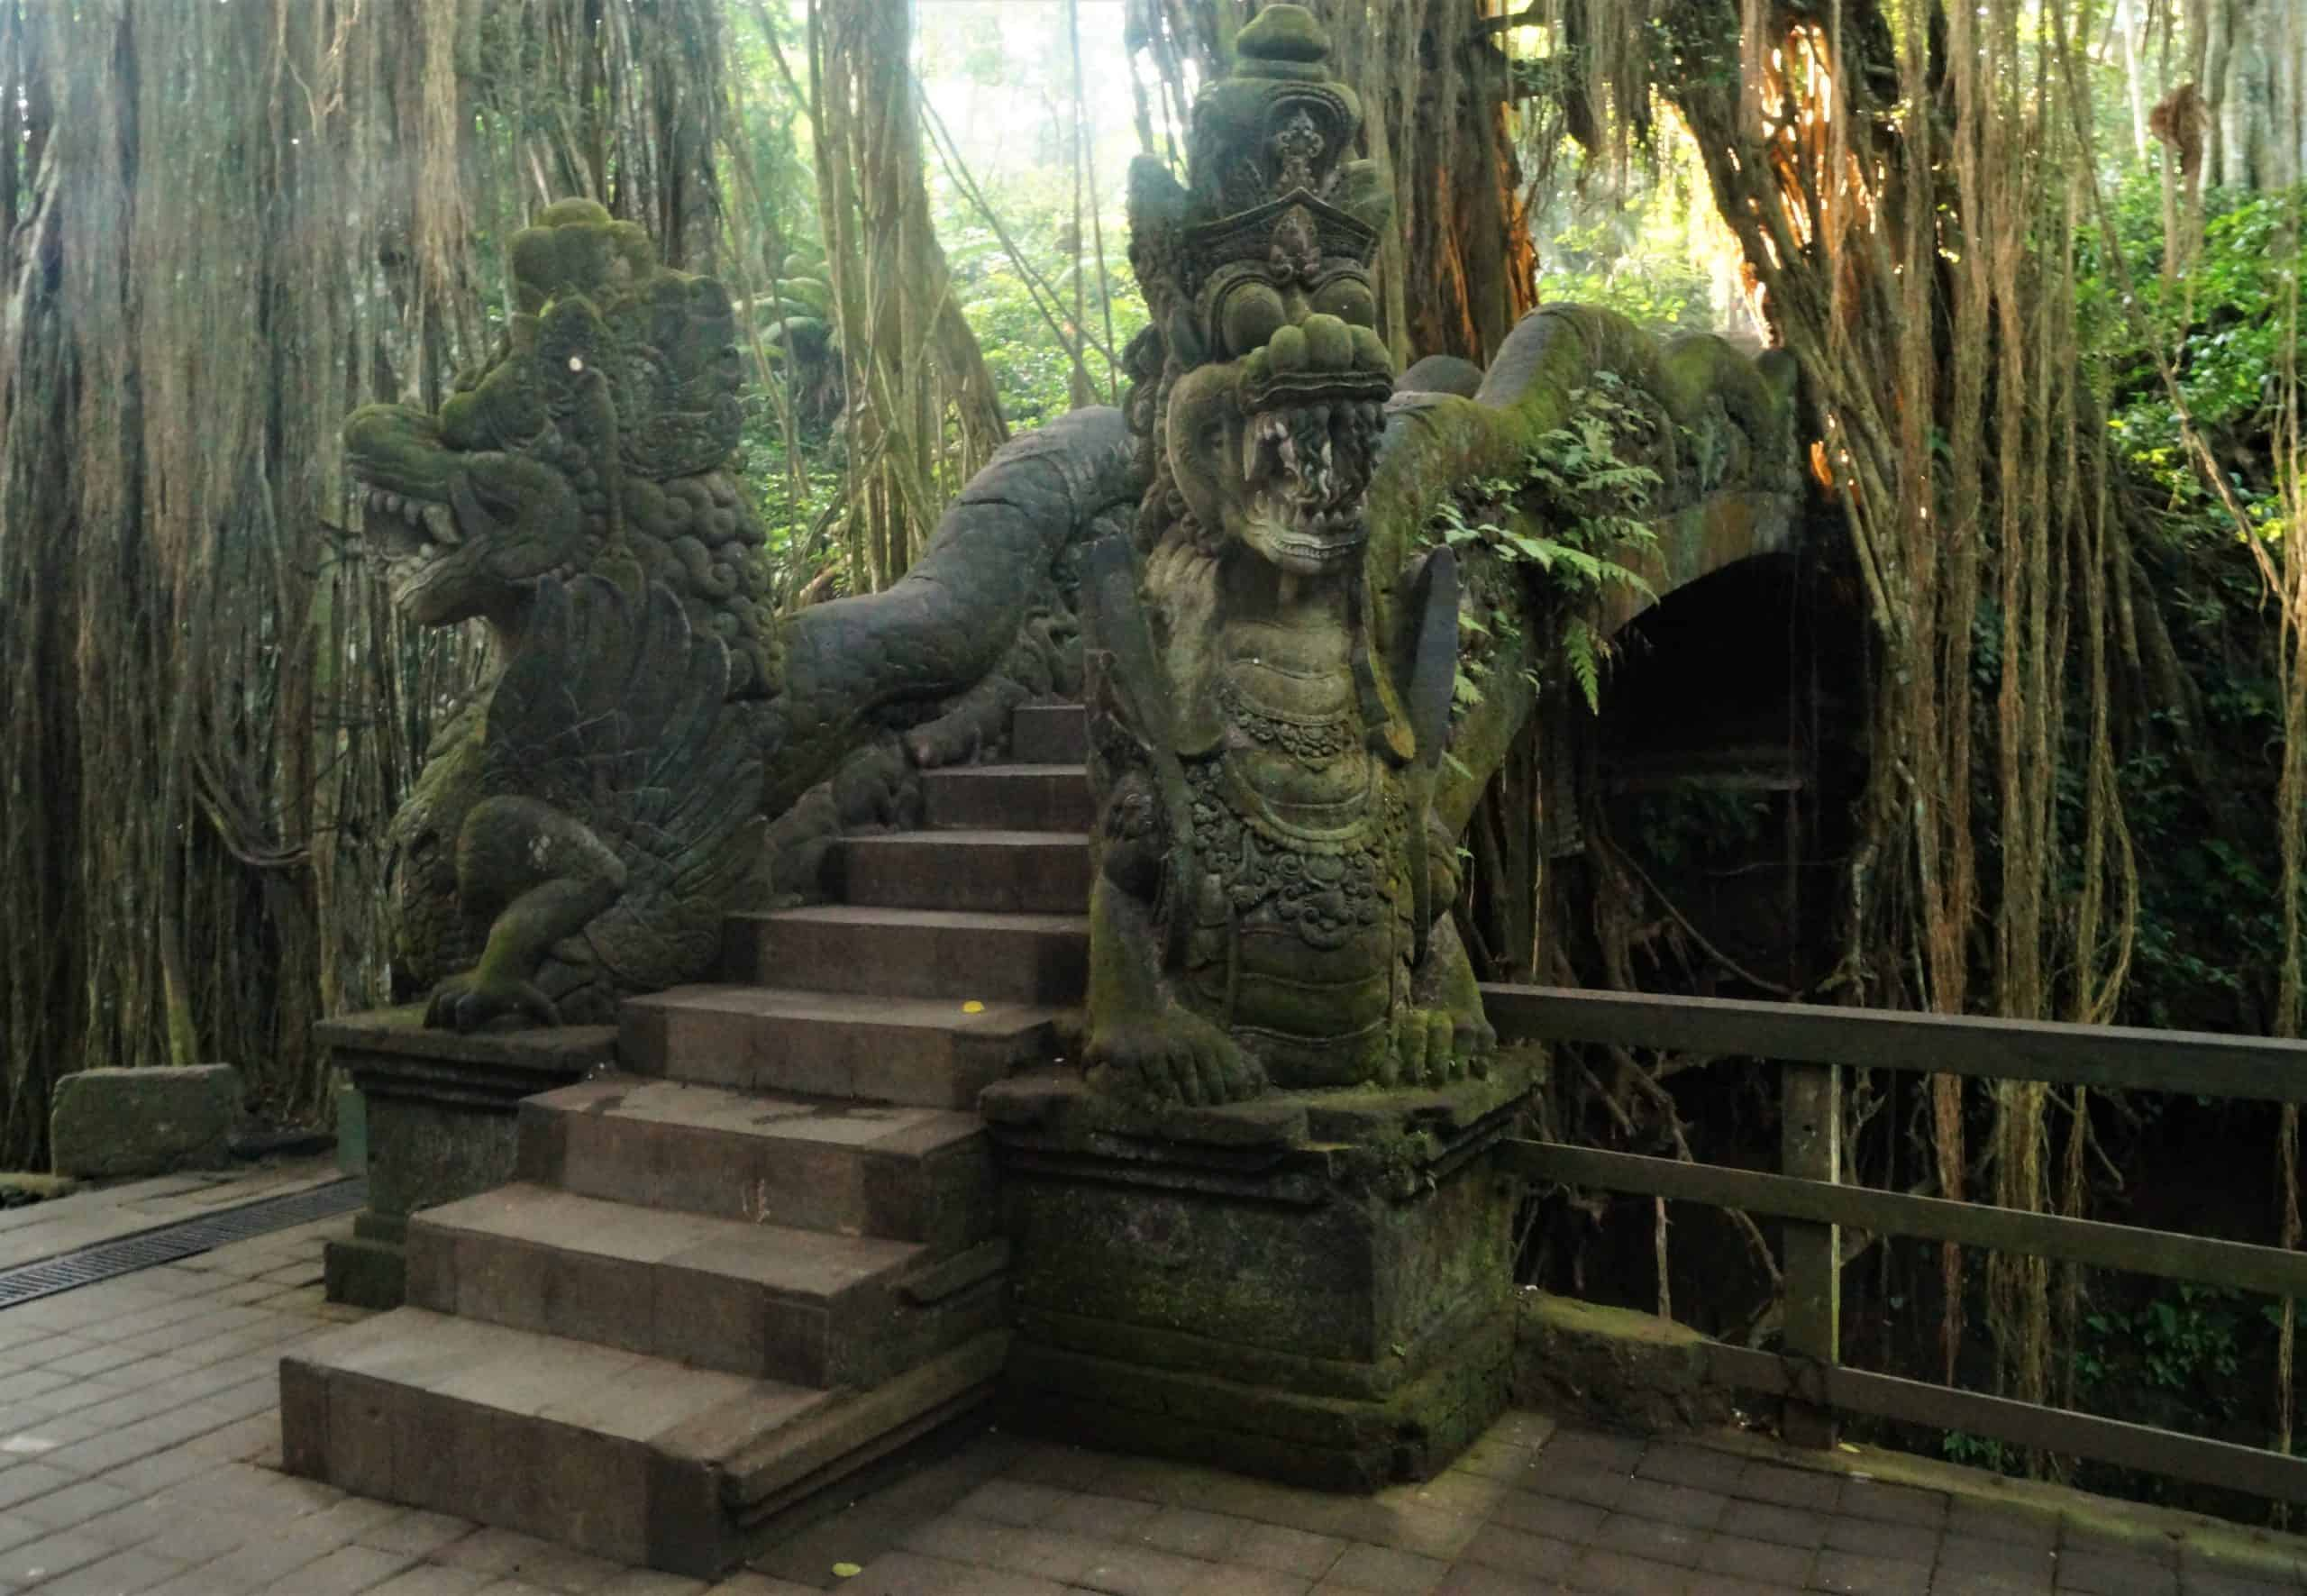 Ubud El Bosque de los Monos Monkey Forest Puente scaled - Top 5 places to see in Ubud in one day